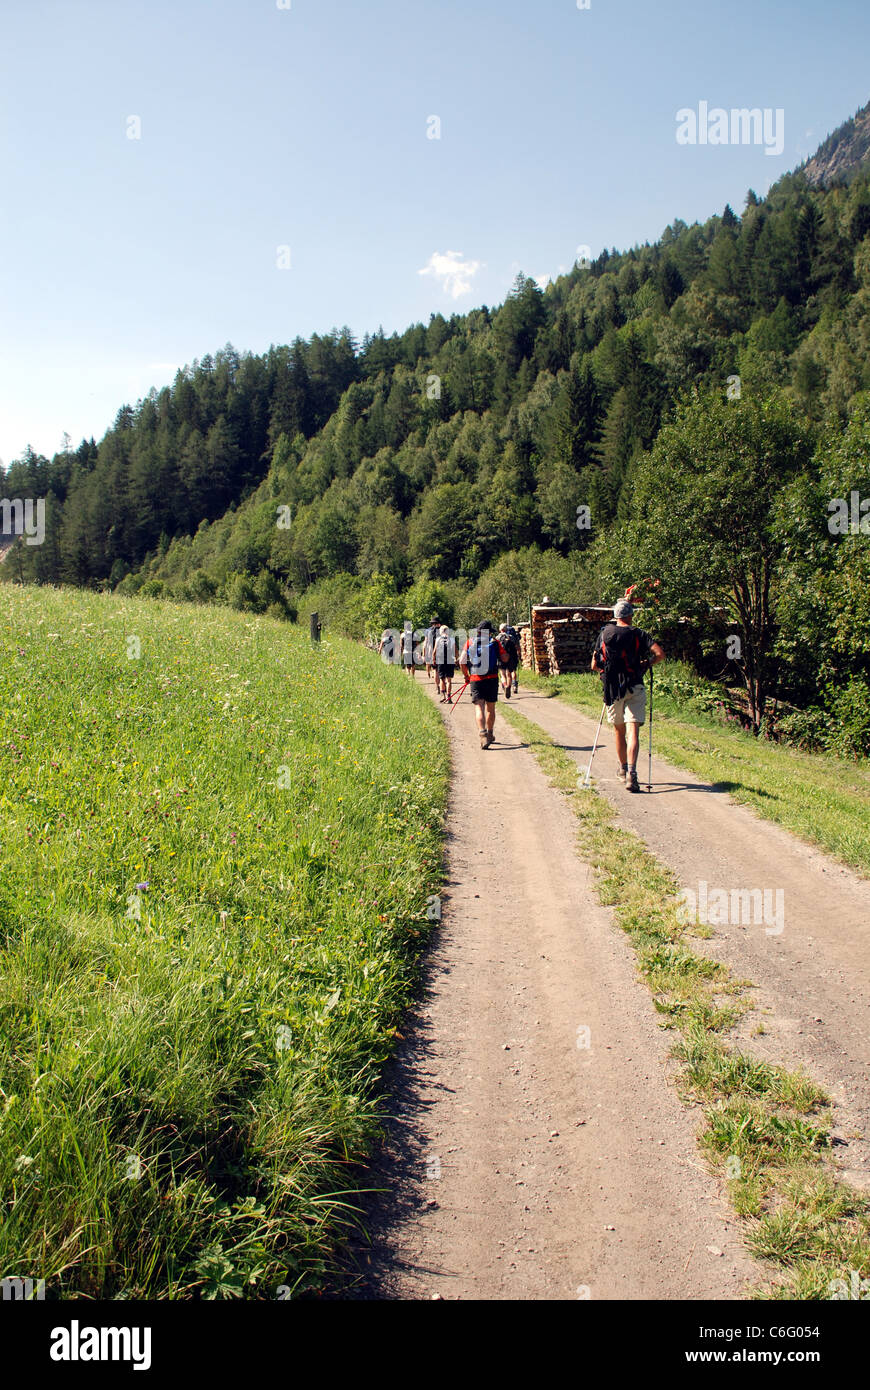 walkers follow a good path along a tree lined valley in the French Alps close to Mont Blanc - Stock Image